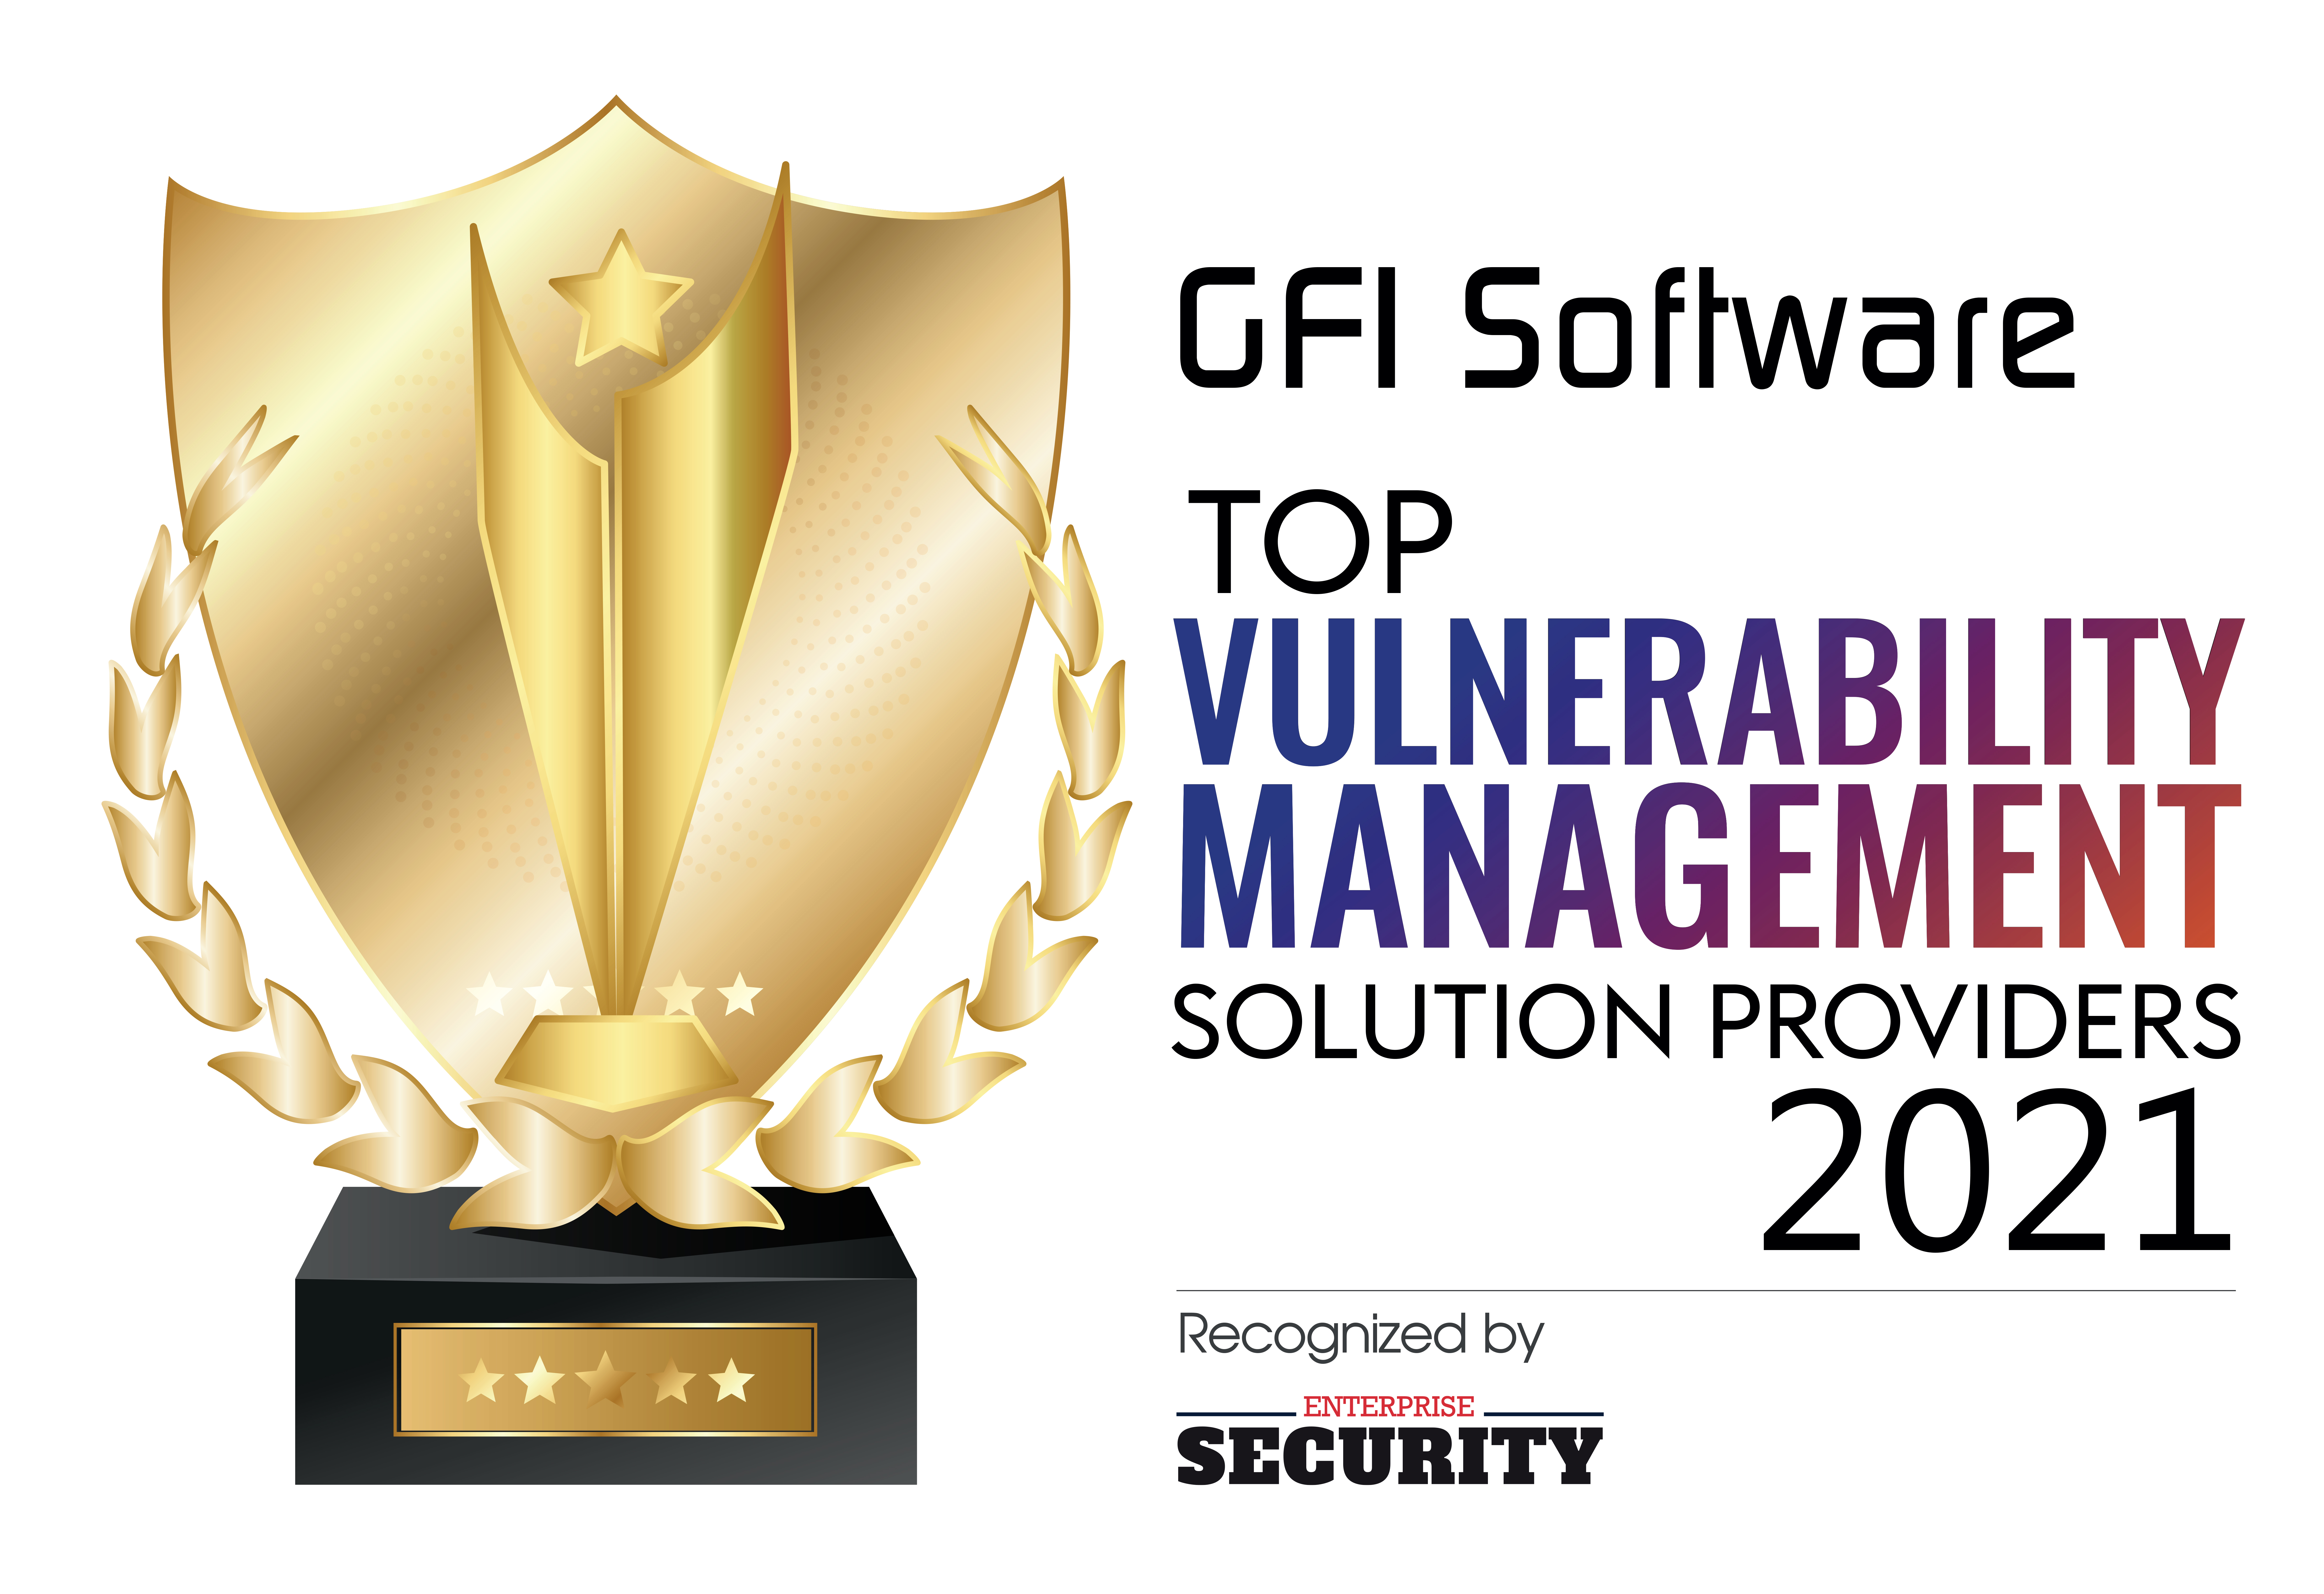 Top Vulnerability Management Solution Providers 2021